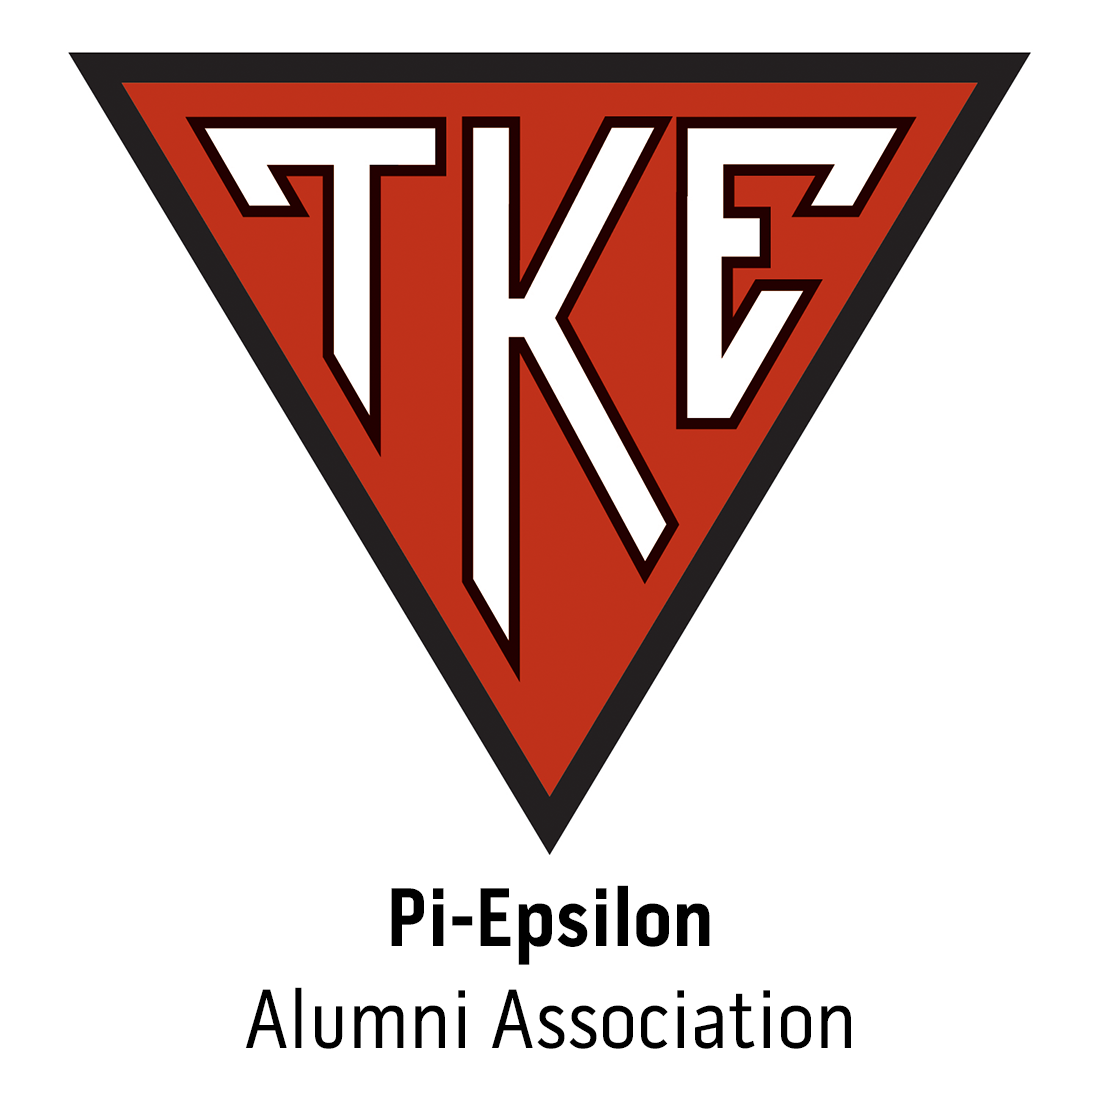 Pi-Epsilon Alumni Association at Christian Brothers University